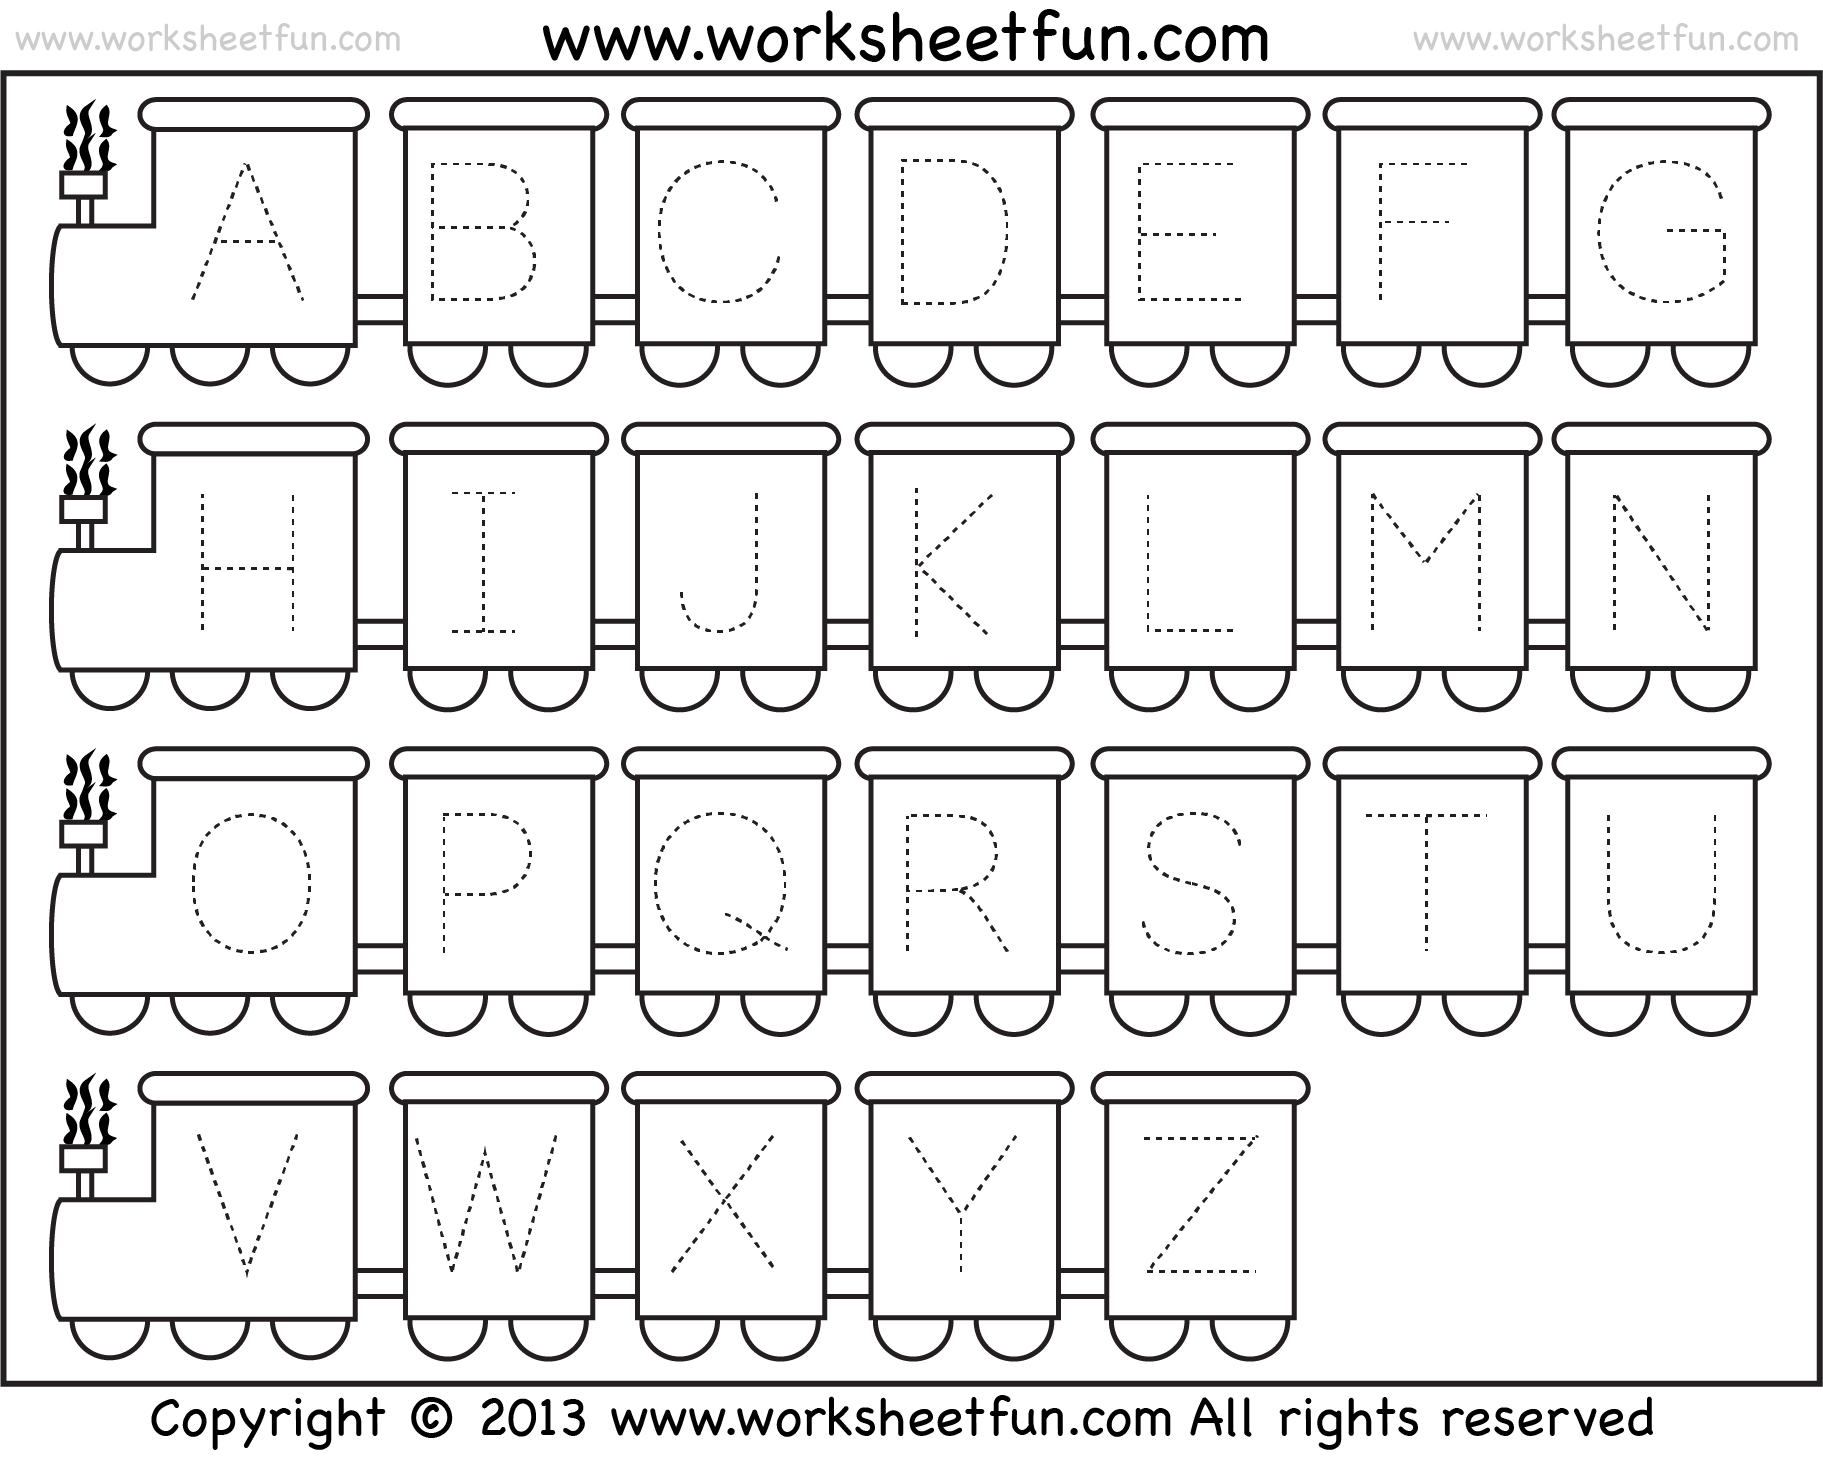 Tracing Letters Worksheets For Kindergarten - Coffemix